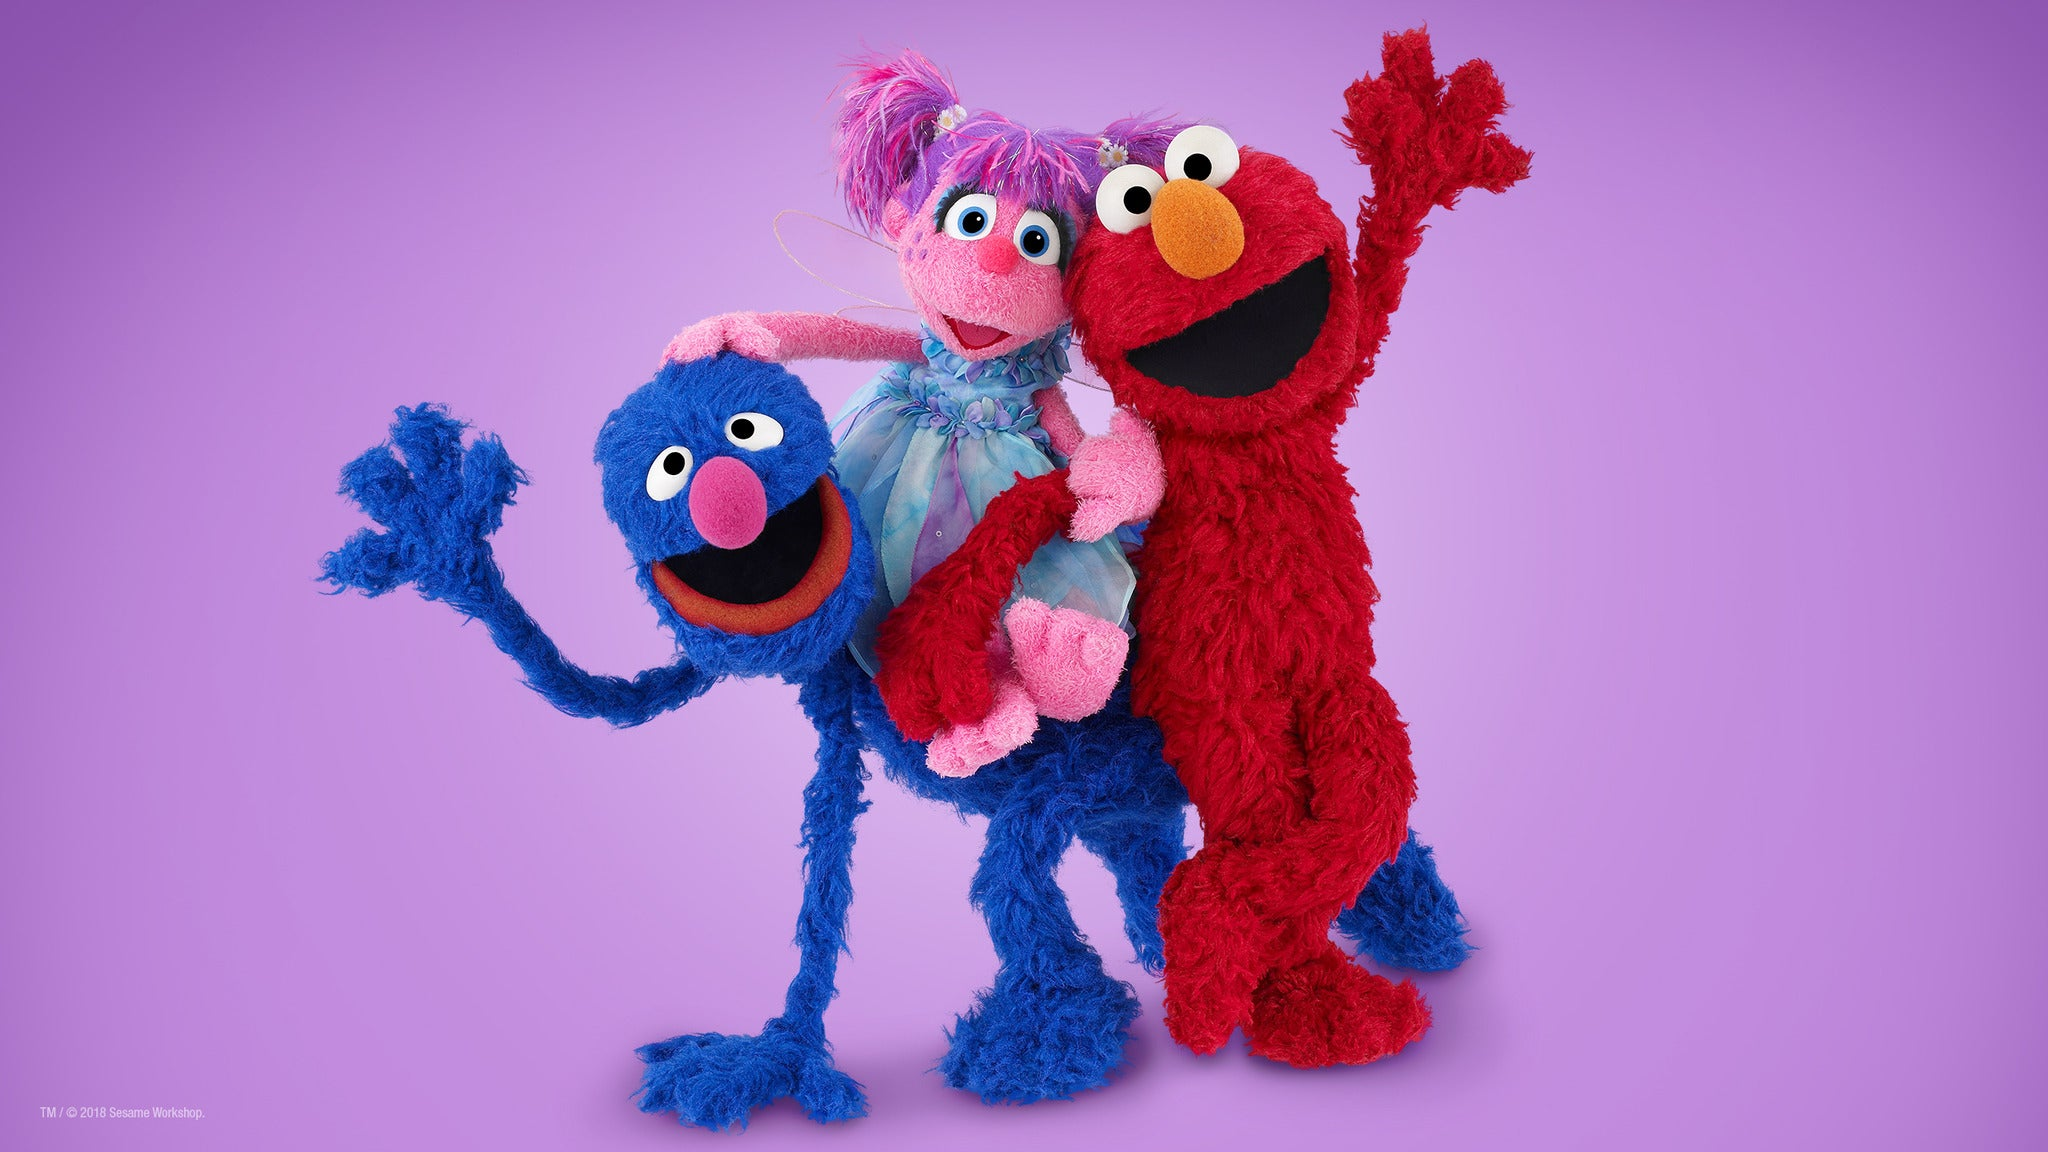 Sesame Street Live! Elmo & Friends Meet & Greet! From 9:30am-10:00am